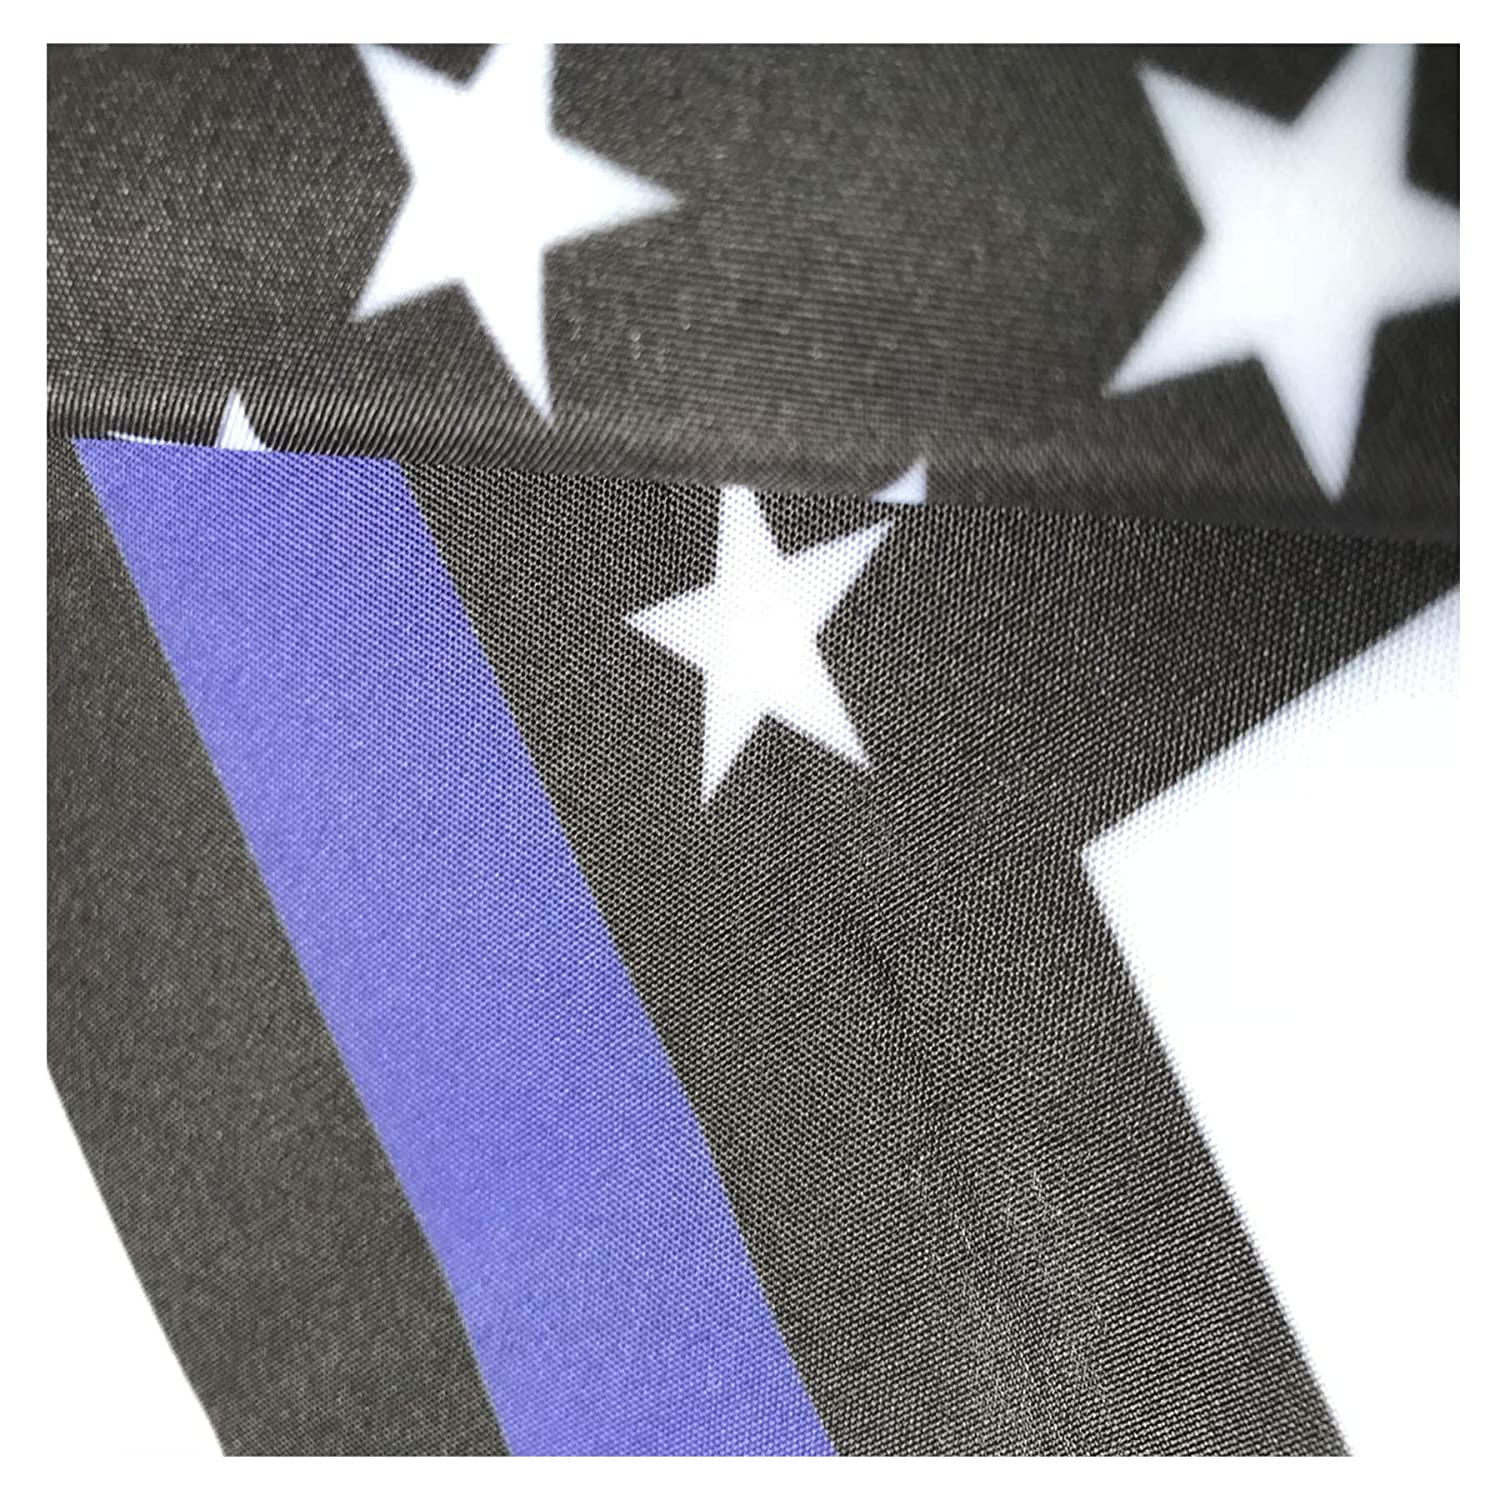 W/&X Garden Flag Stand /& American Flag thin blue line garden flag with Anti-Wind Clip,Stopper,Weatherproof 2 Sided 12x18 Inch Patriotic US Flag Banner Keep Your Flags from Flying Away in High Winds